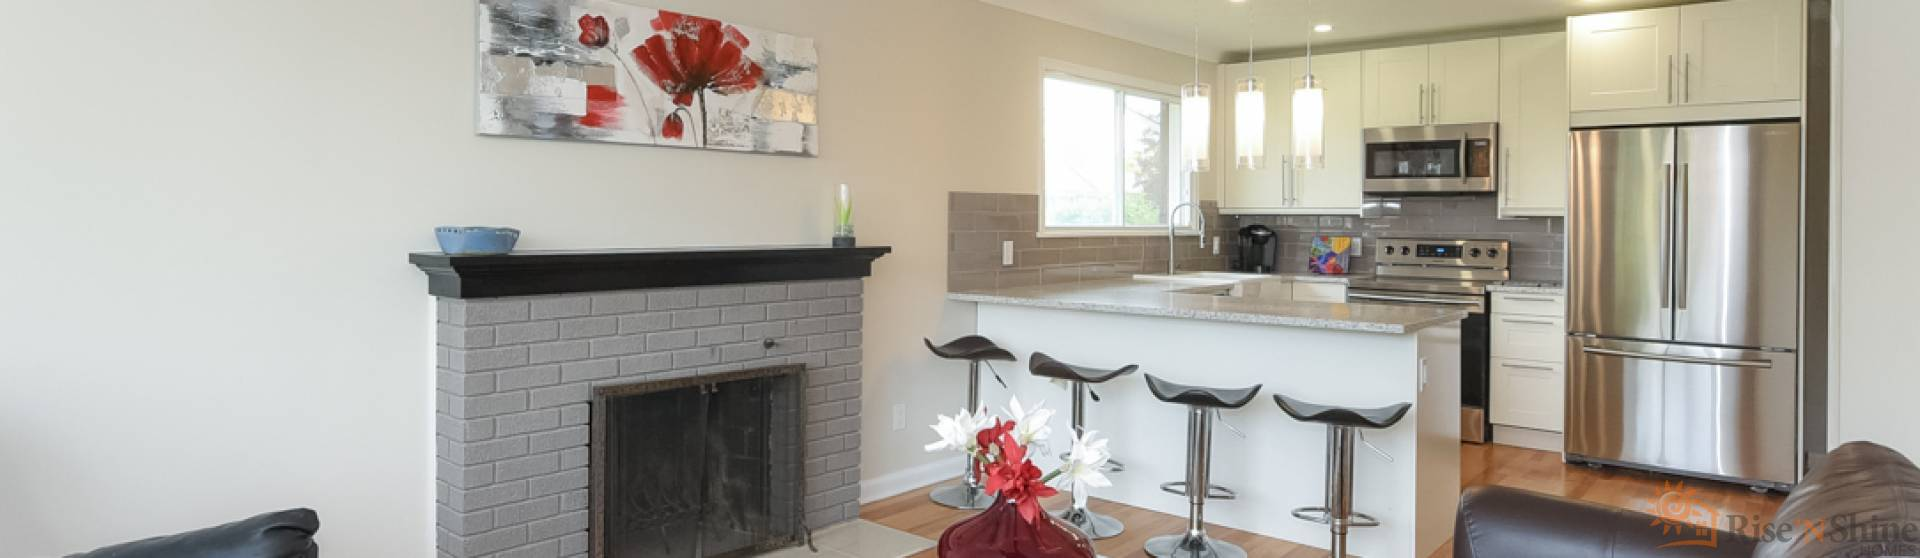 Iris Street,Ottawa,Canada K2C 1B3,4 Bedrooms Bedrooms, 2 Bathrooms,Multi-Family,Iris Street,1031